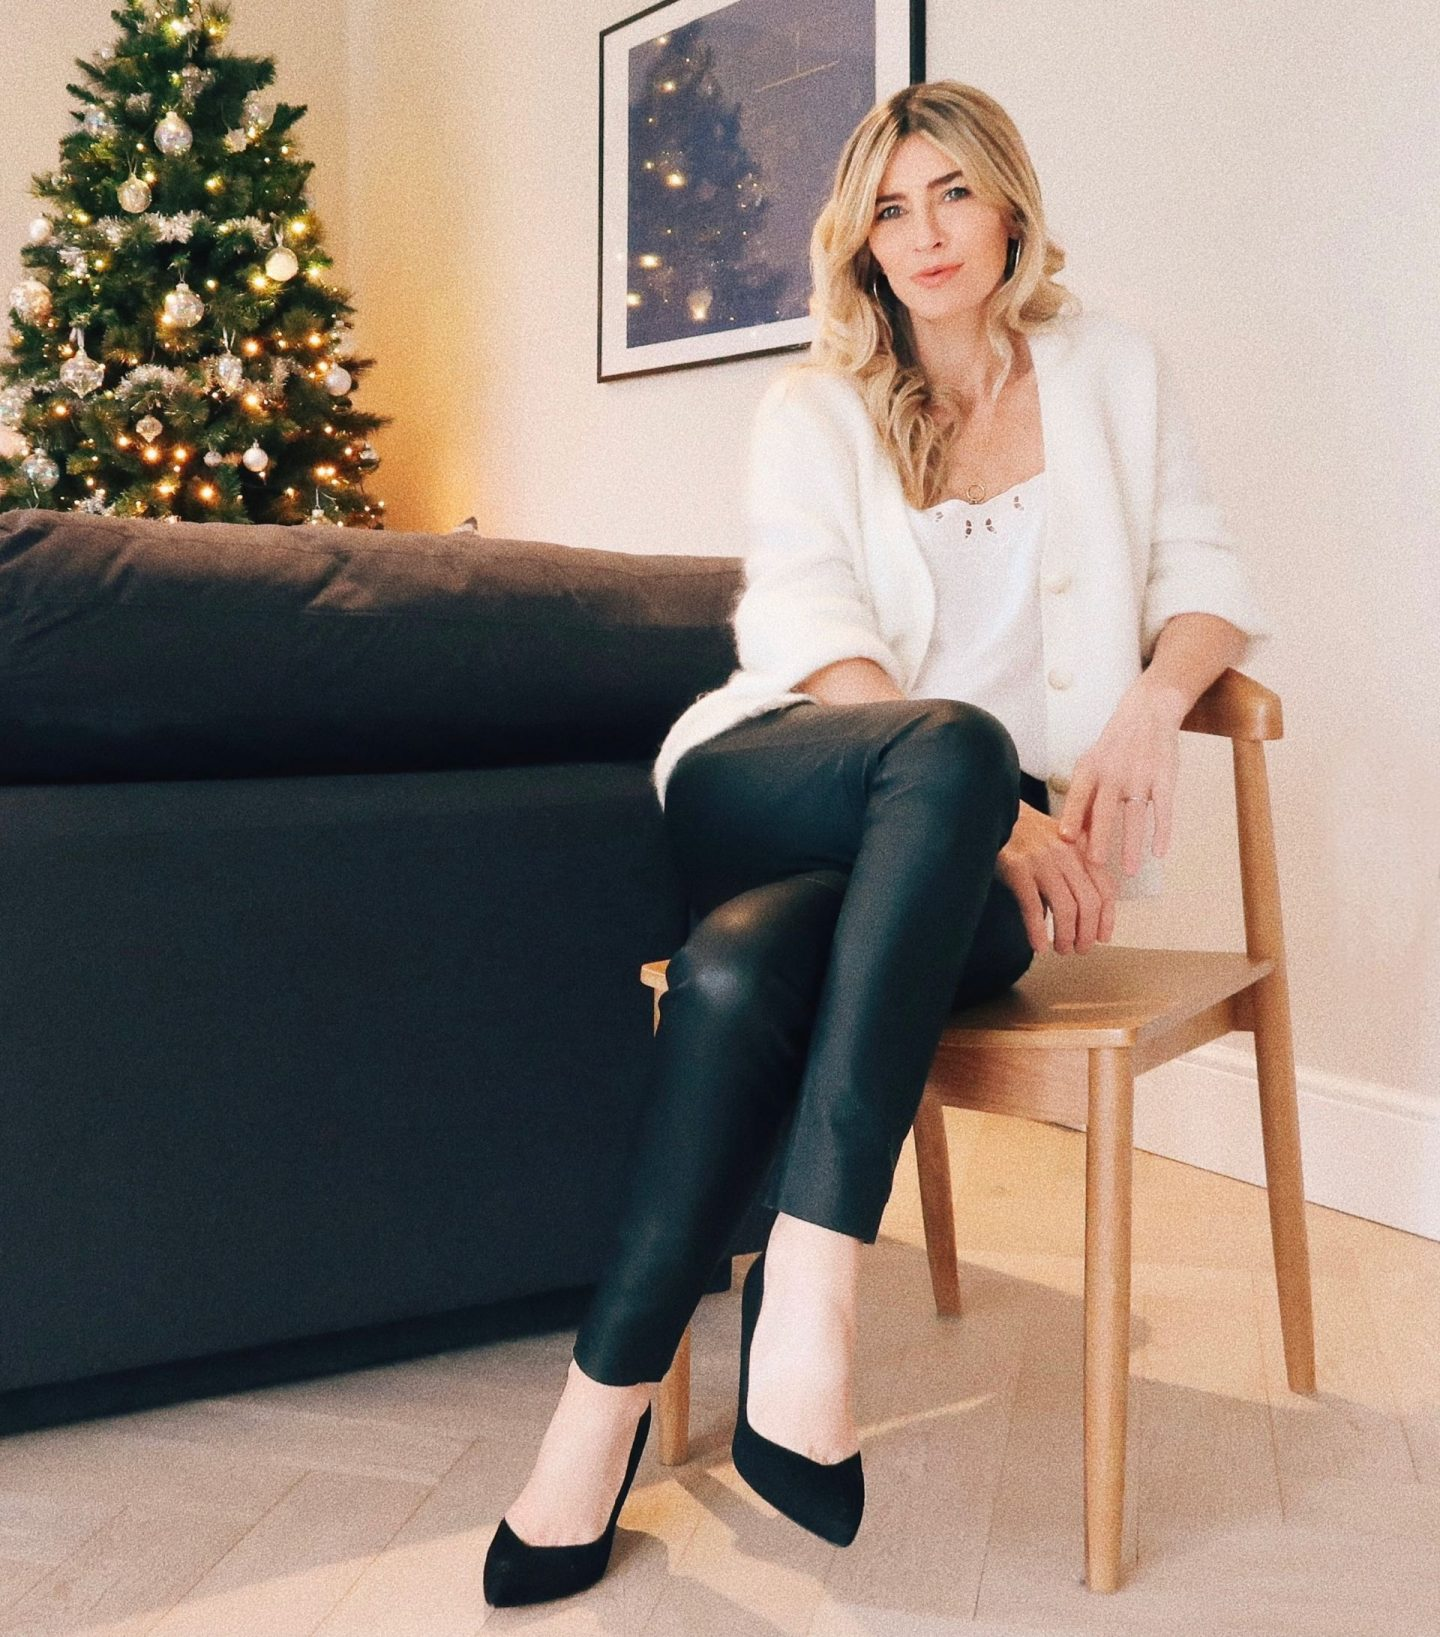 ELEGANT CHRISTMAS OUTFIT IDEAS